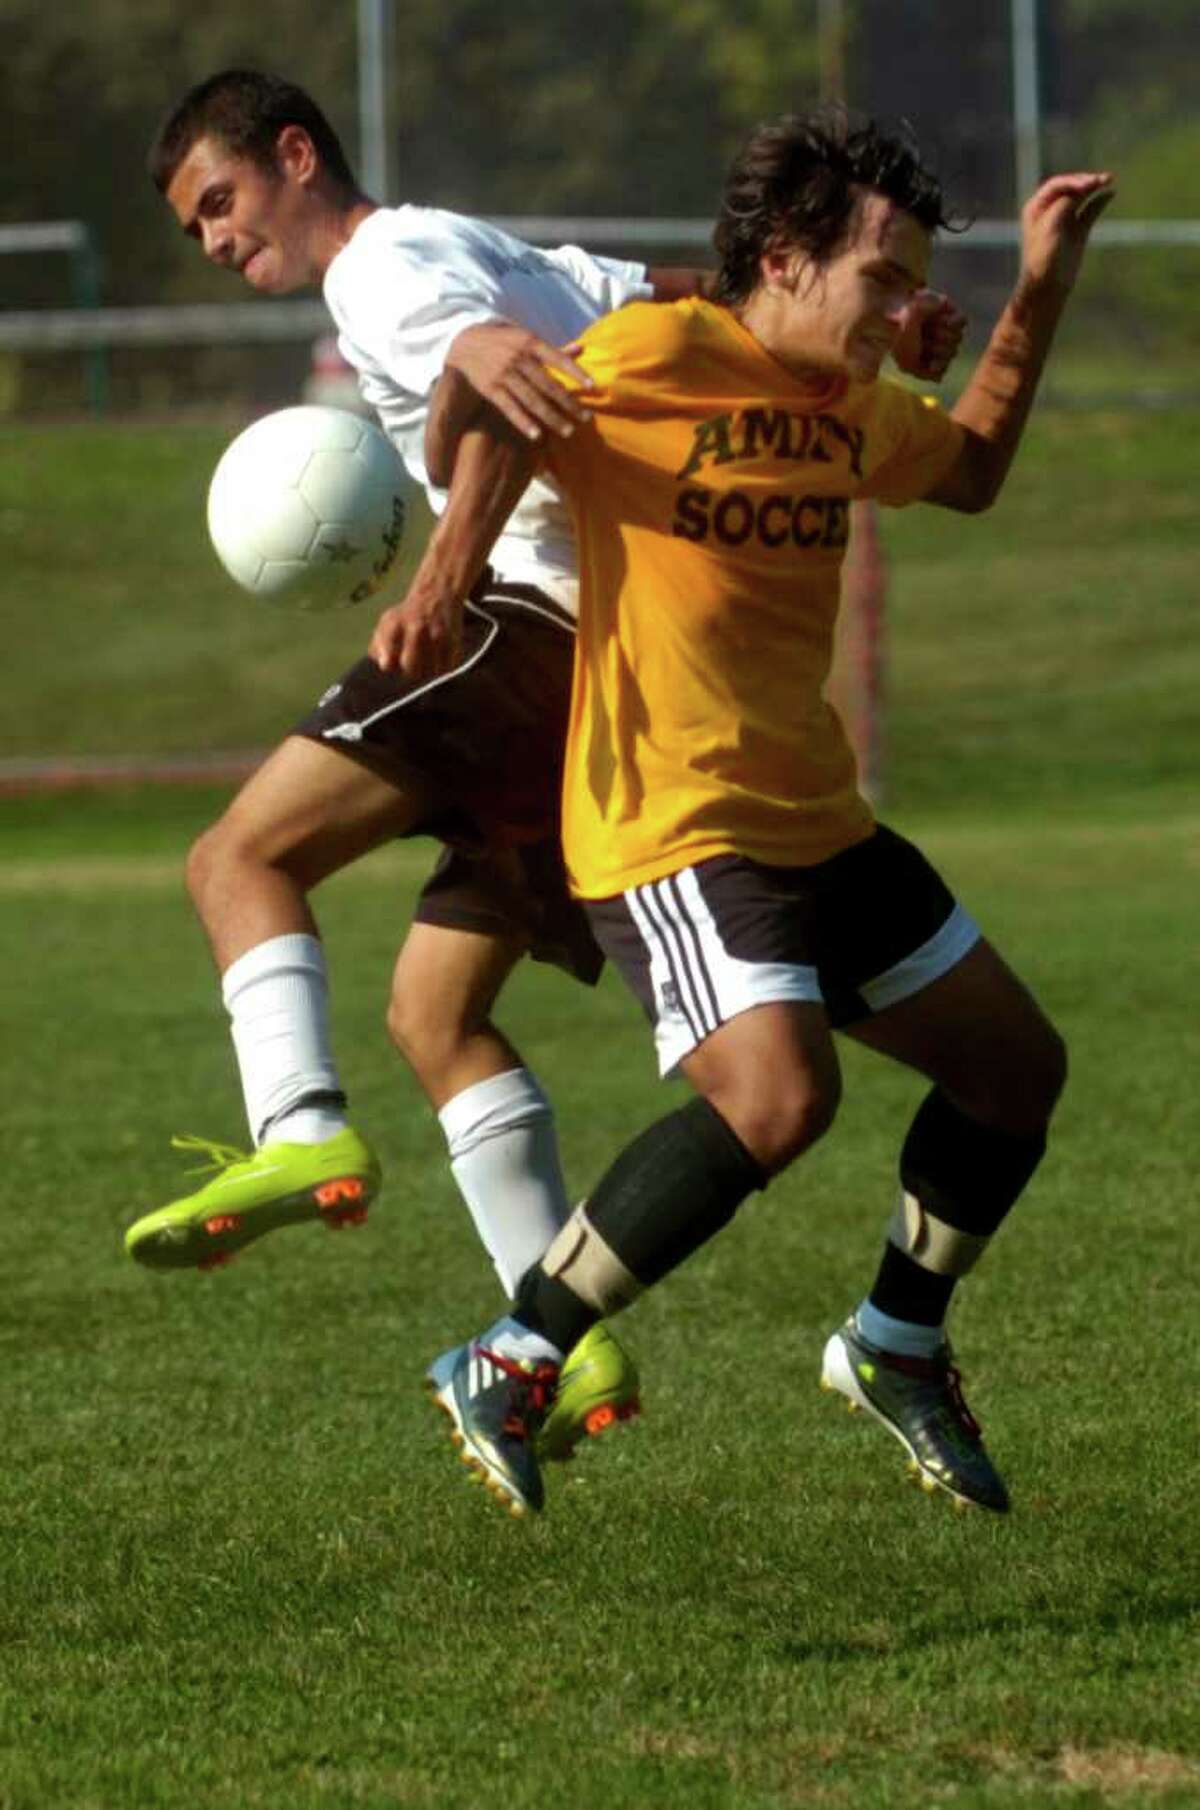 Trumbull's Anthony Teixera, left, and Amity's Ricky Mayer, right, both jump for the ball during a soccer scrimmage against on Thursday, September 2, 2010.